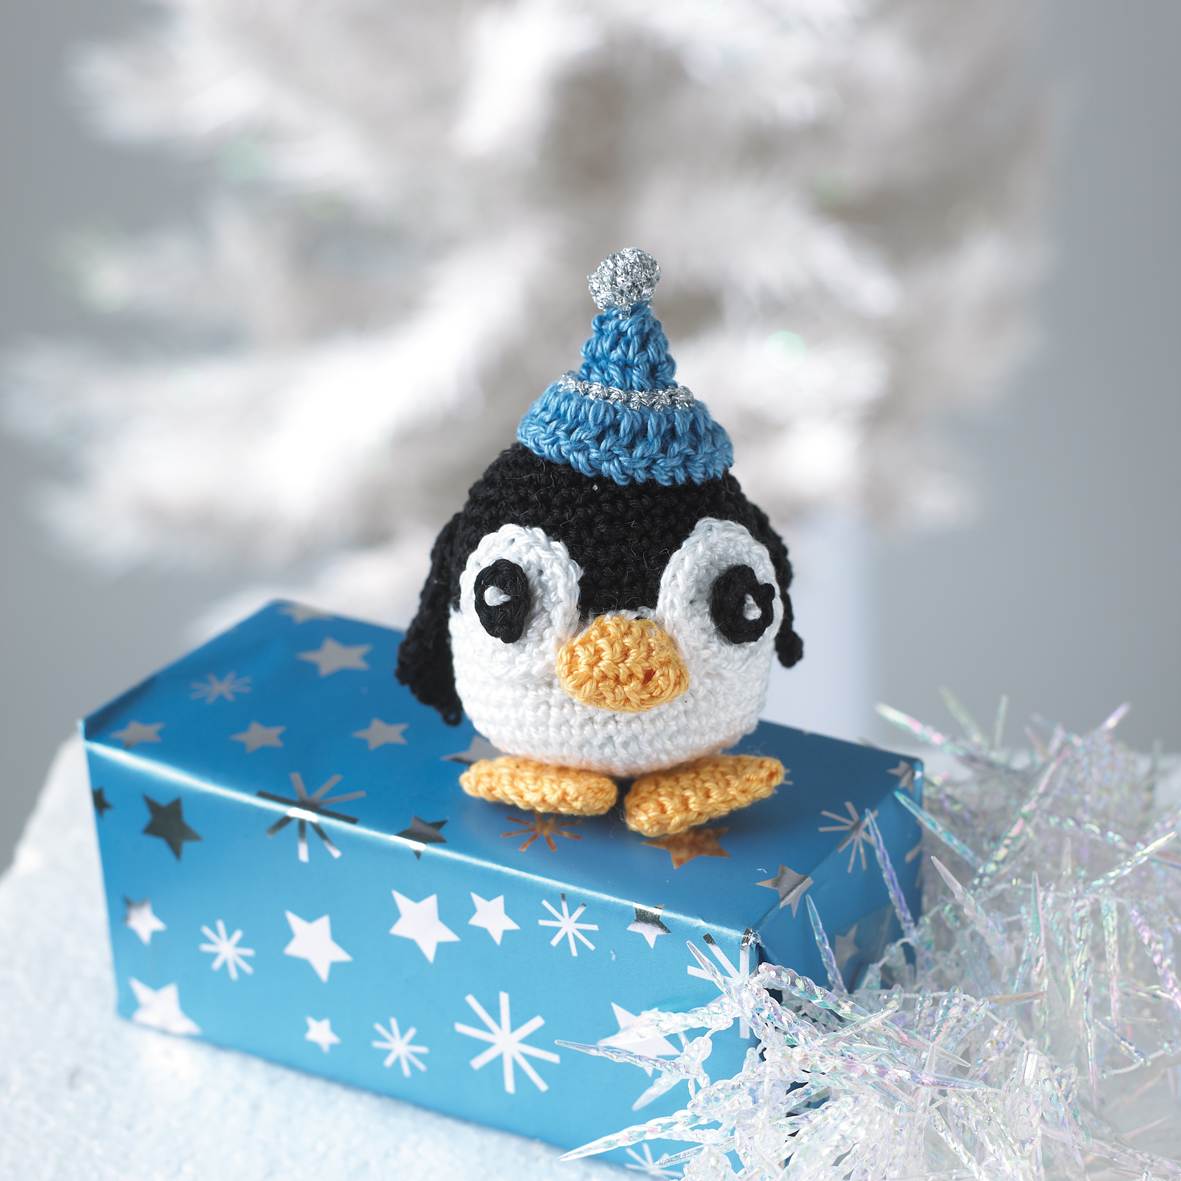 12 Days of Penguin... On the seventh day of Penguin